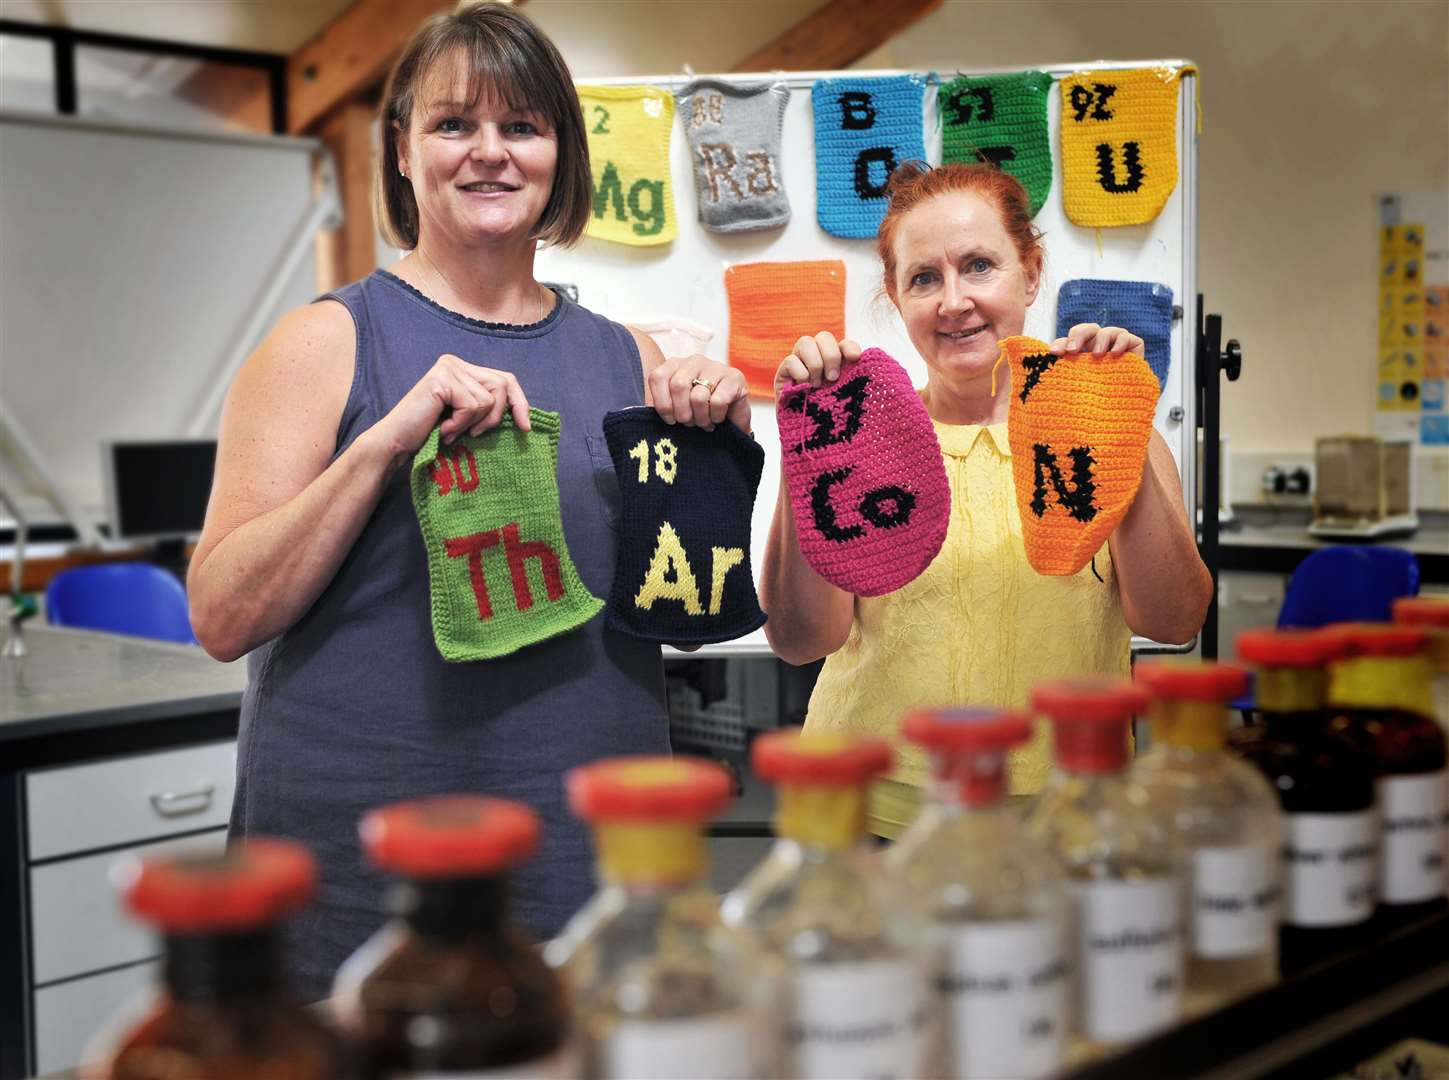 From left, Judith Ward and Ursula Lowe with the knitted Periodic Table